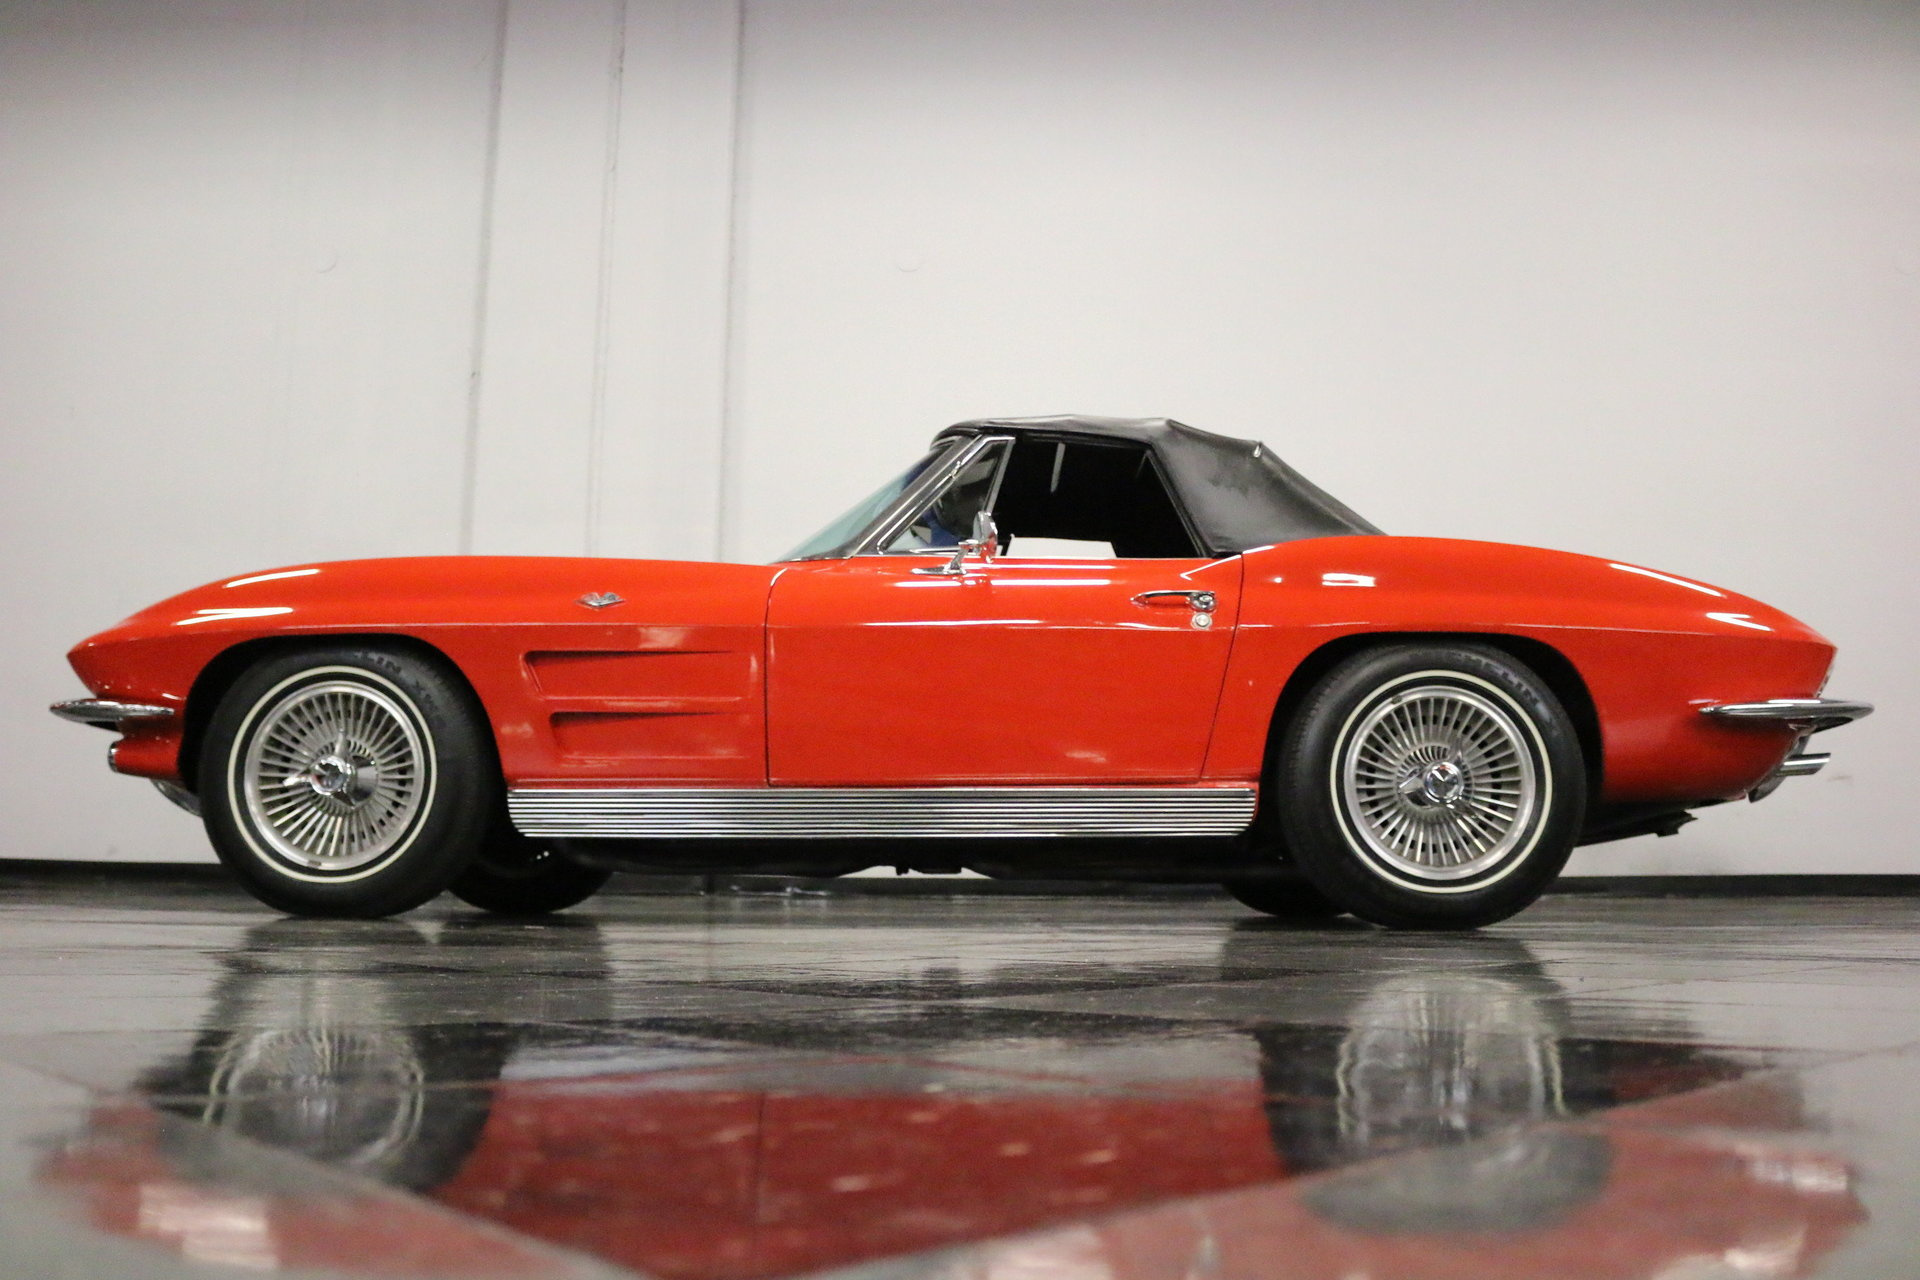 Car Shows Dfw >> 1963 Chevrolet Corvette | Streetside Classics - The Nation's Trusted Classic Car Consignment Dealer